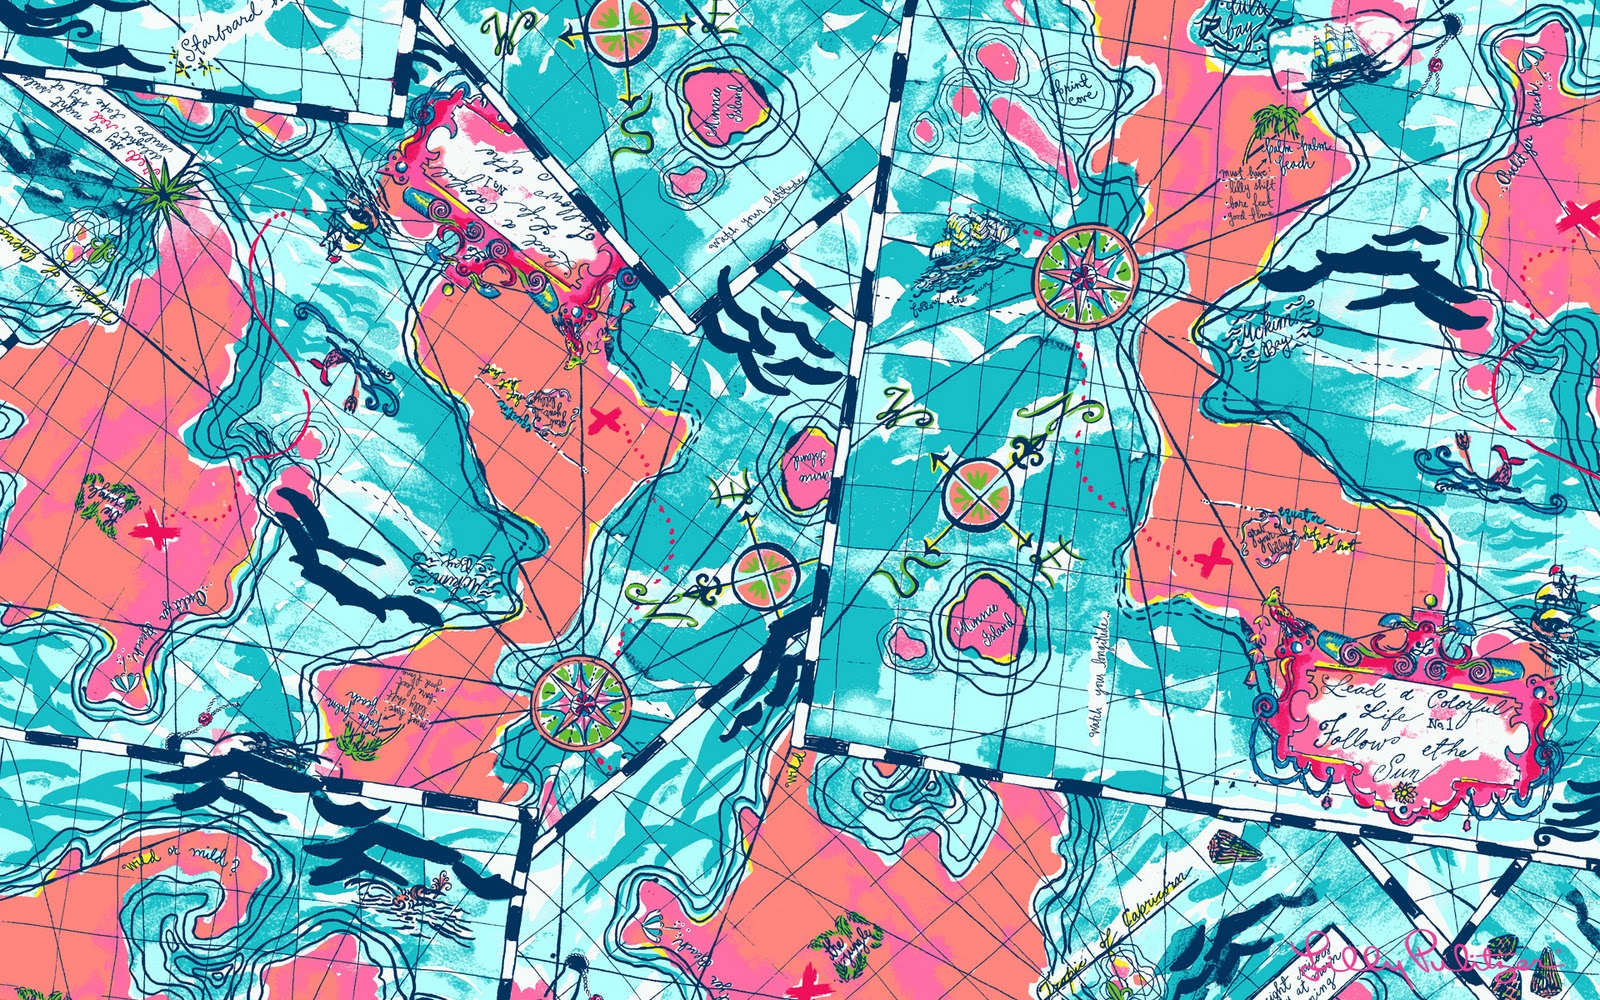 Lilly Pulitzer Patterns Lilly Pulitzer Backgrounds 12542 1600x1000 Px Hdwallsourcecom